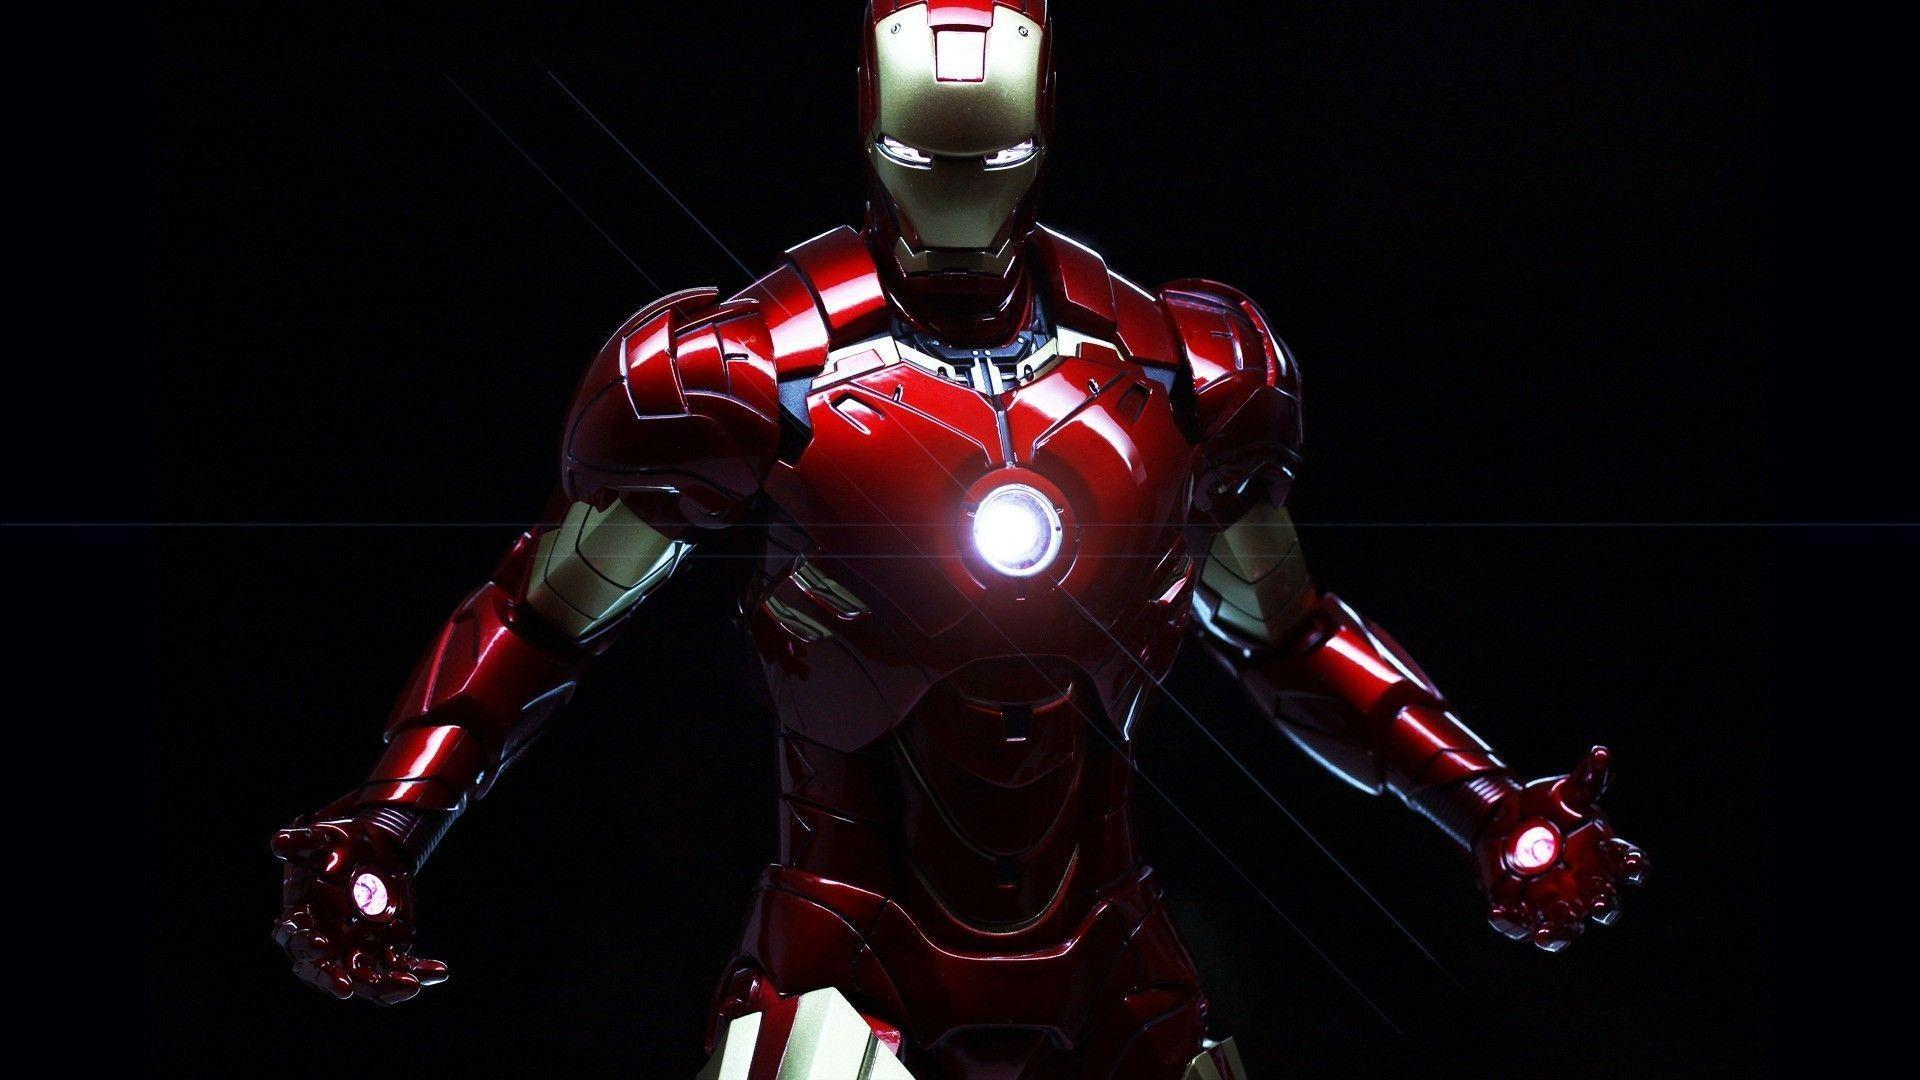 iron man suit wallpaper wallpapers as